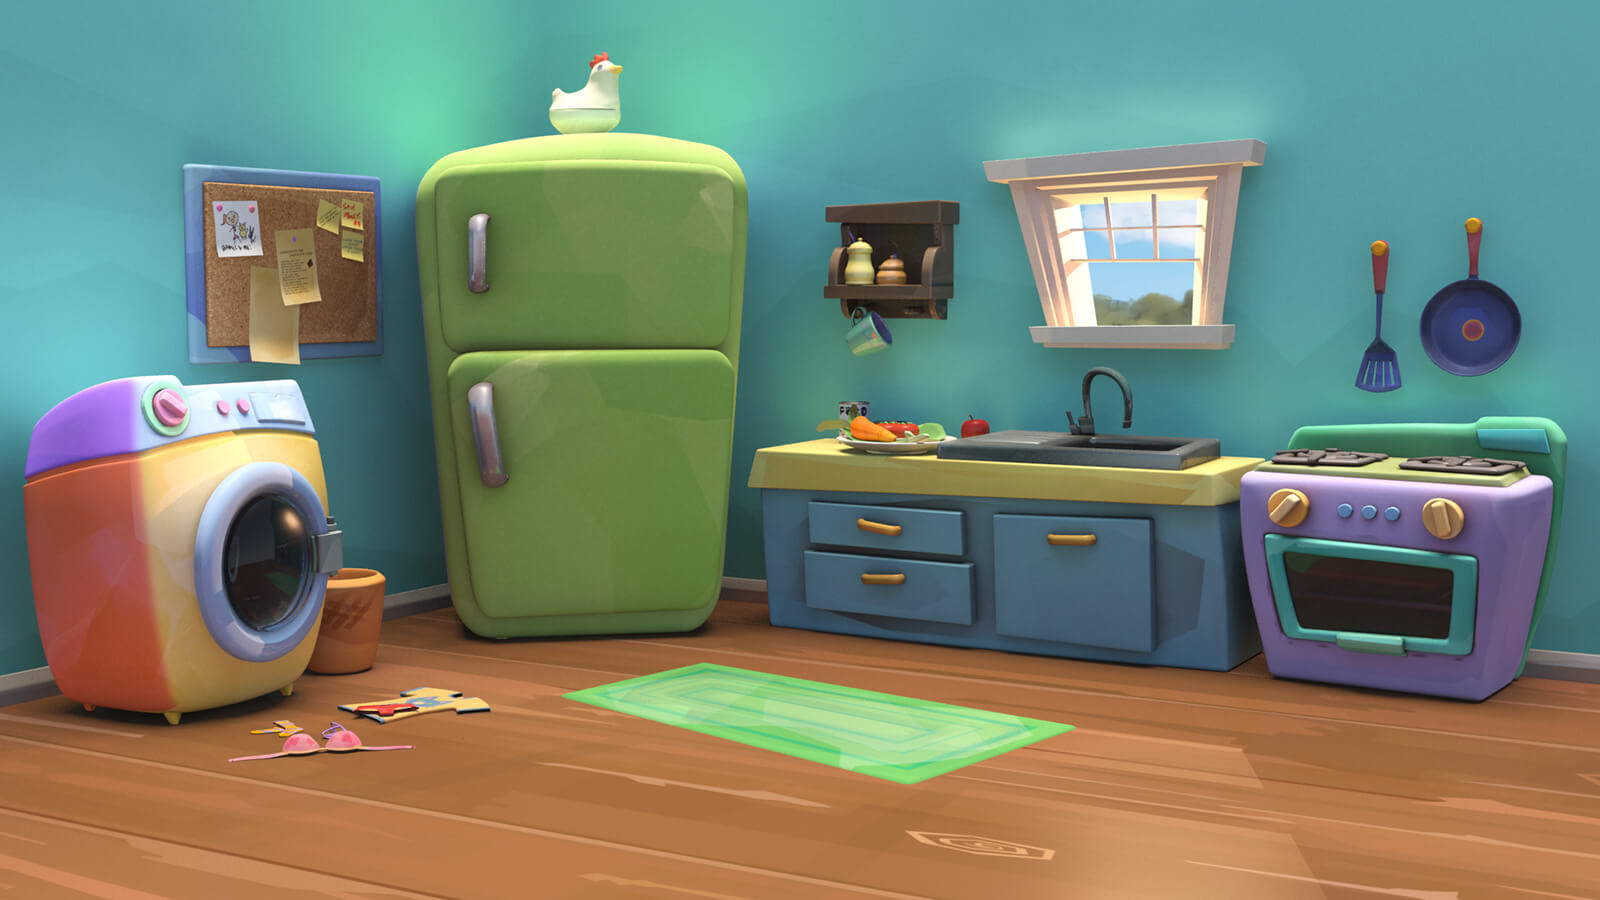 A colorful, stylized CG kitchen scene, with an oven, sink, fridge, and washing machine against a teal-colored wall.